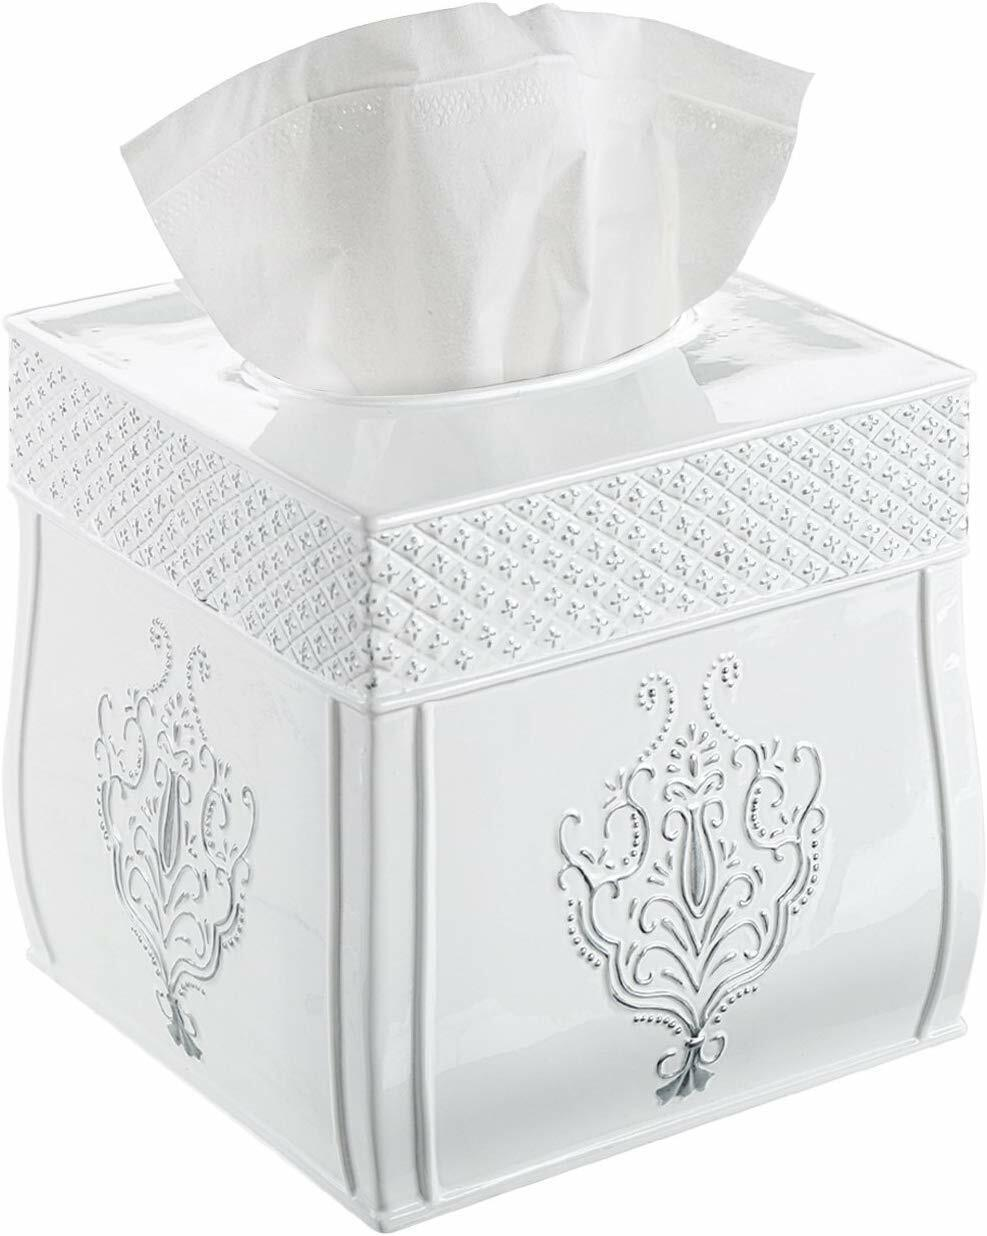 Creative Scents Square Tissue Box Startseite – Decorative Tissue Holder Is Finished